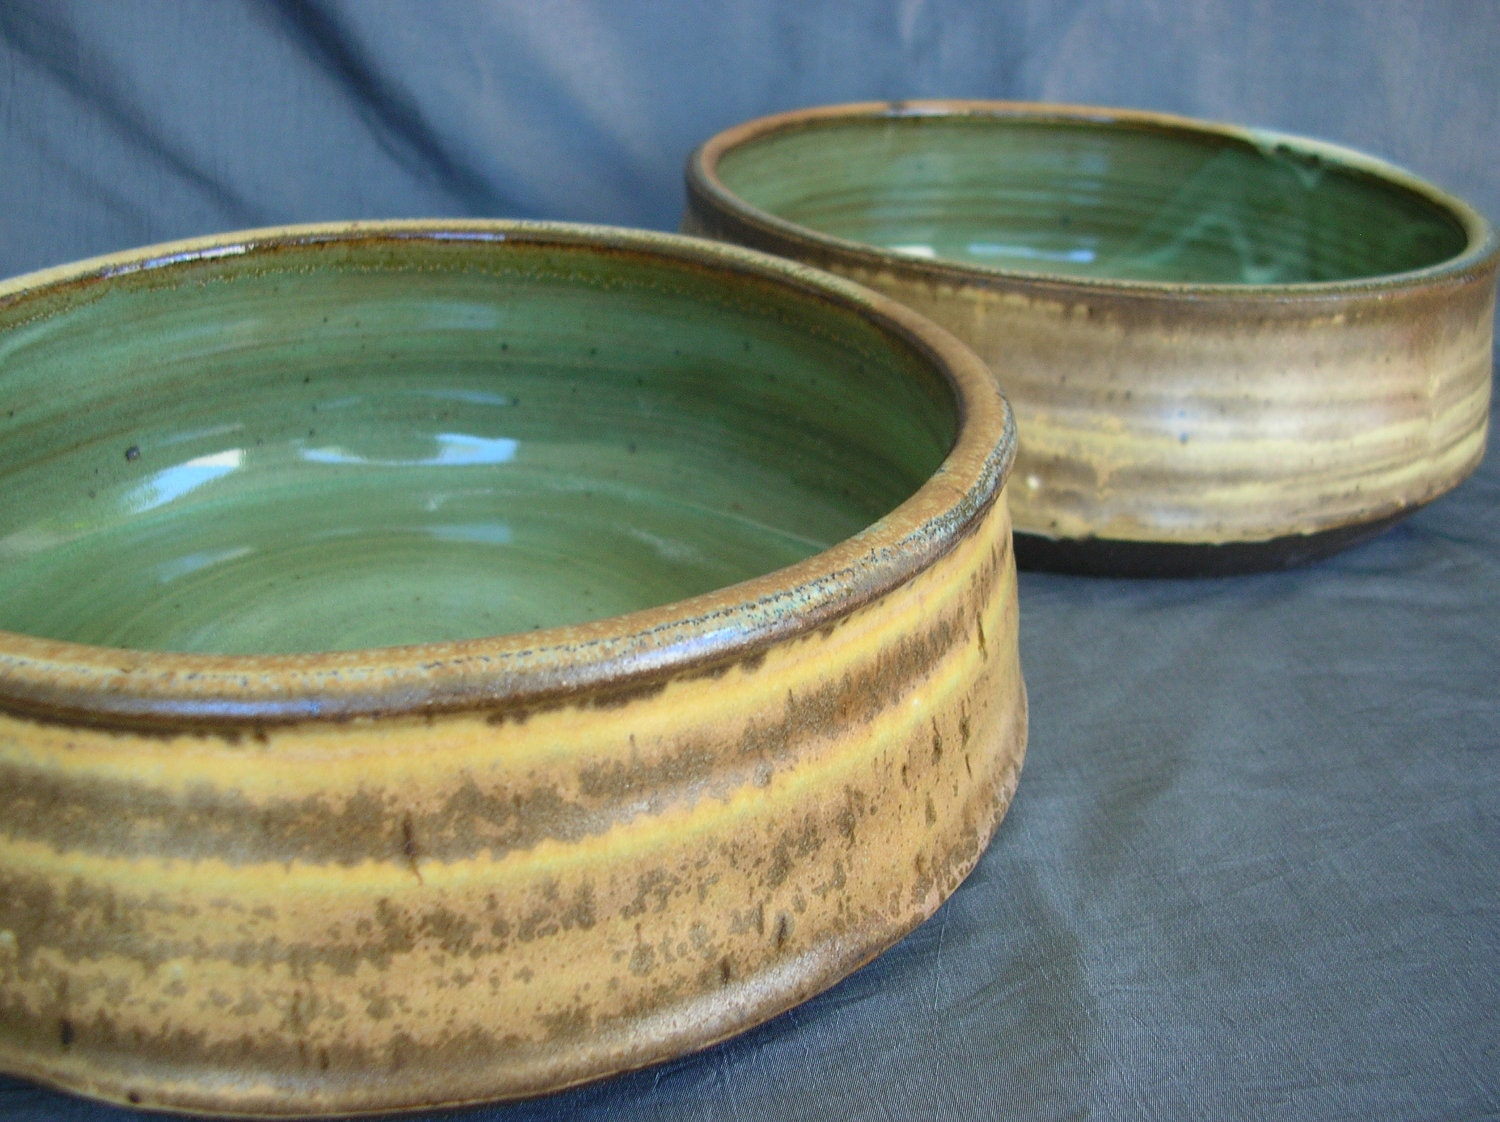 Large Ceramic Dog Bowl Set In Autumn Yellow And Spring Green